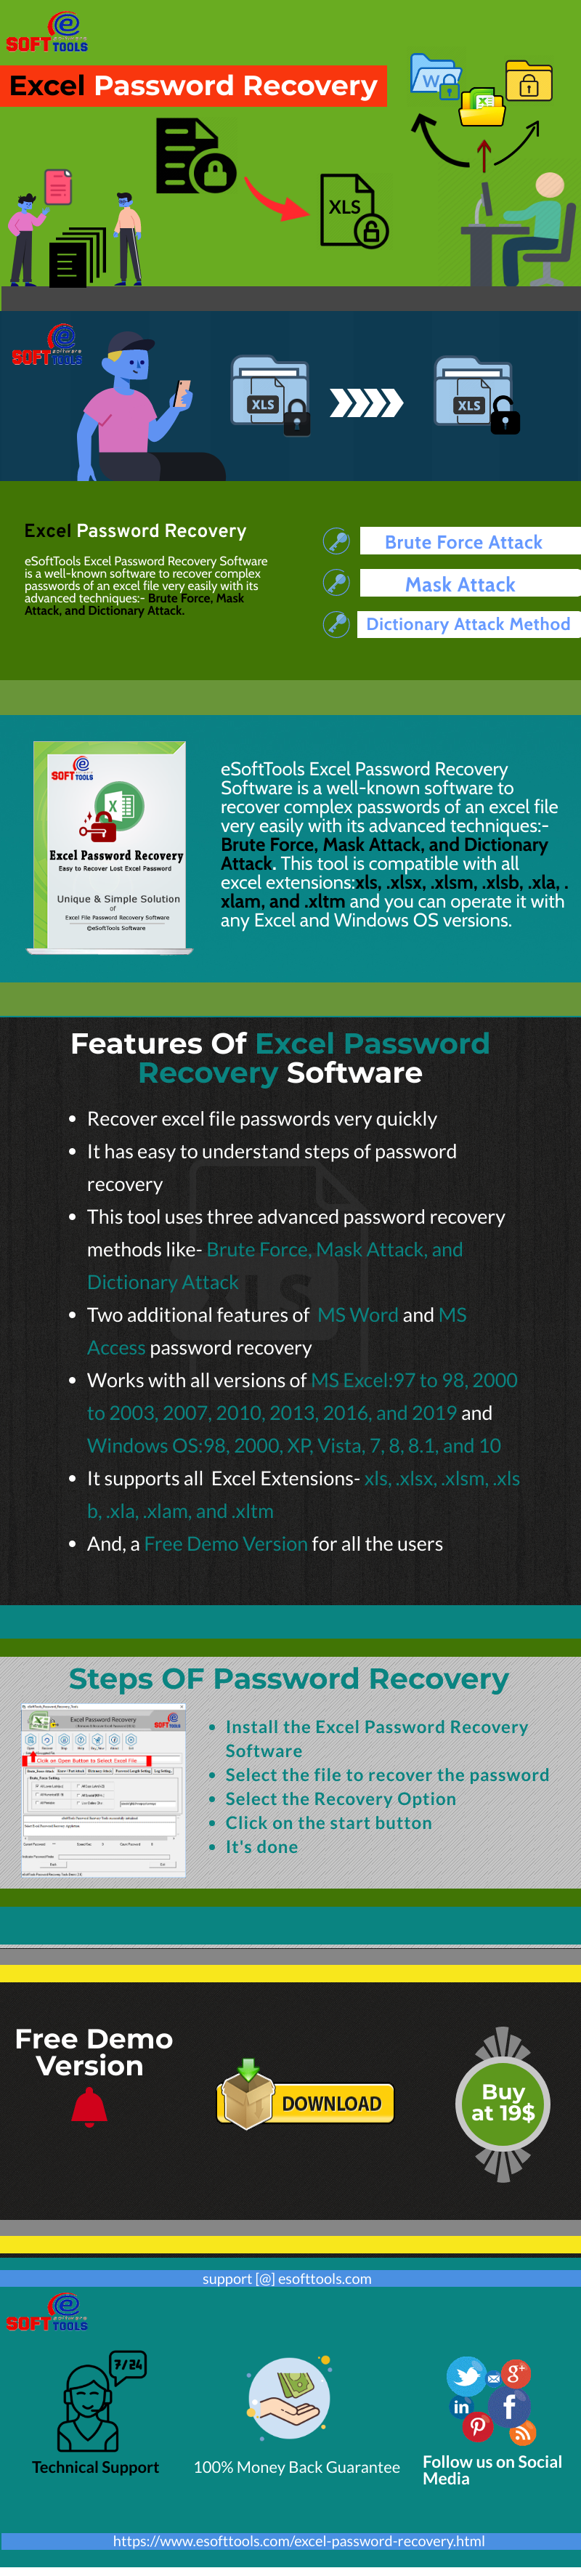 Best Free Excel Password Recovery Tool